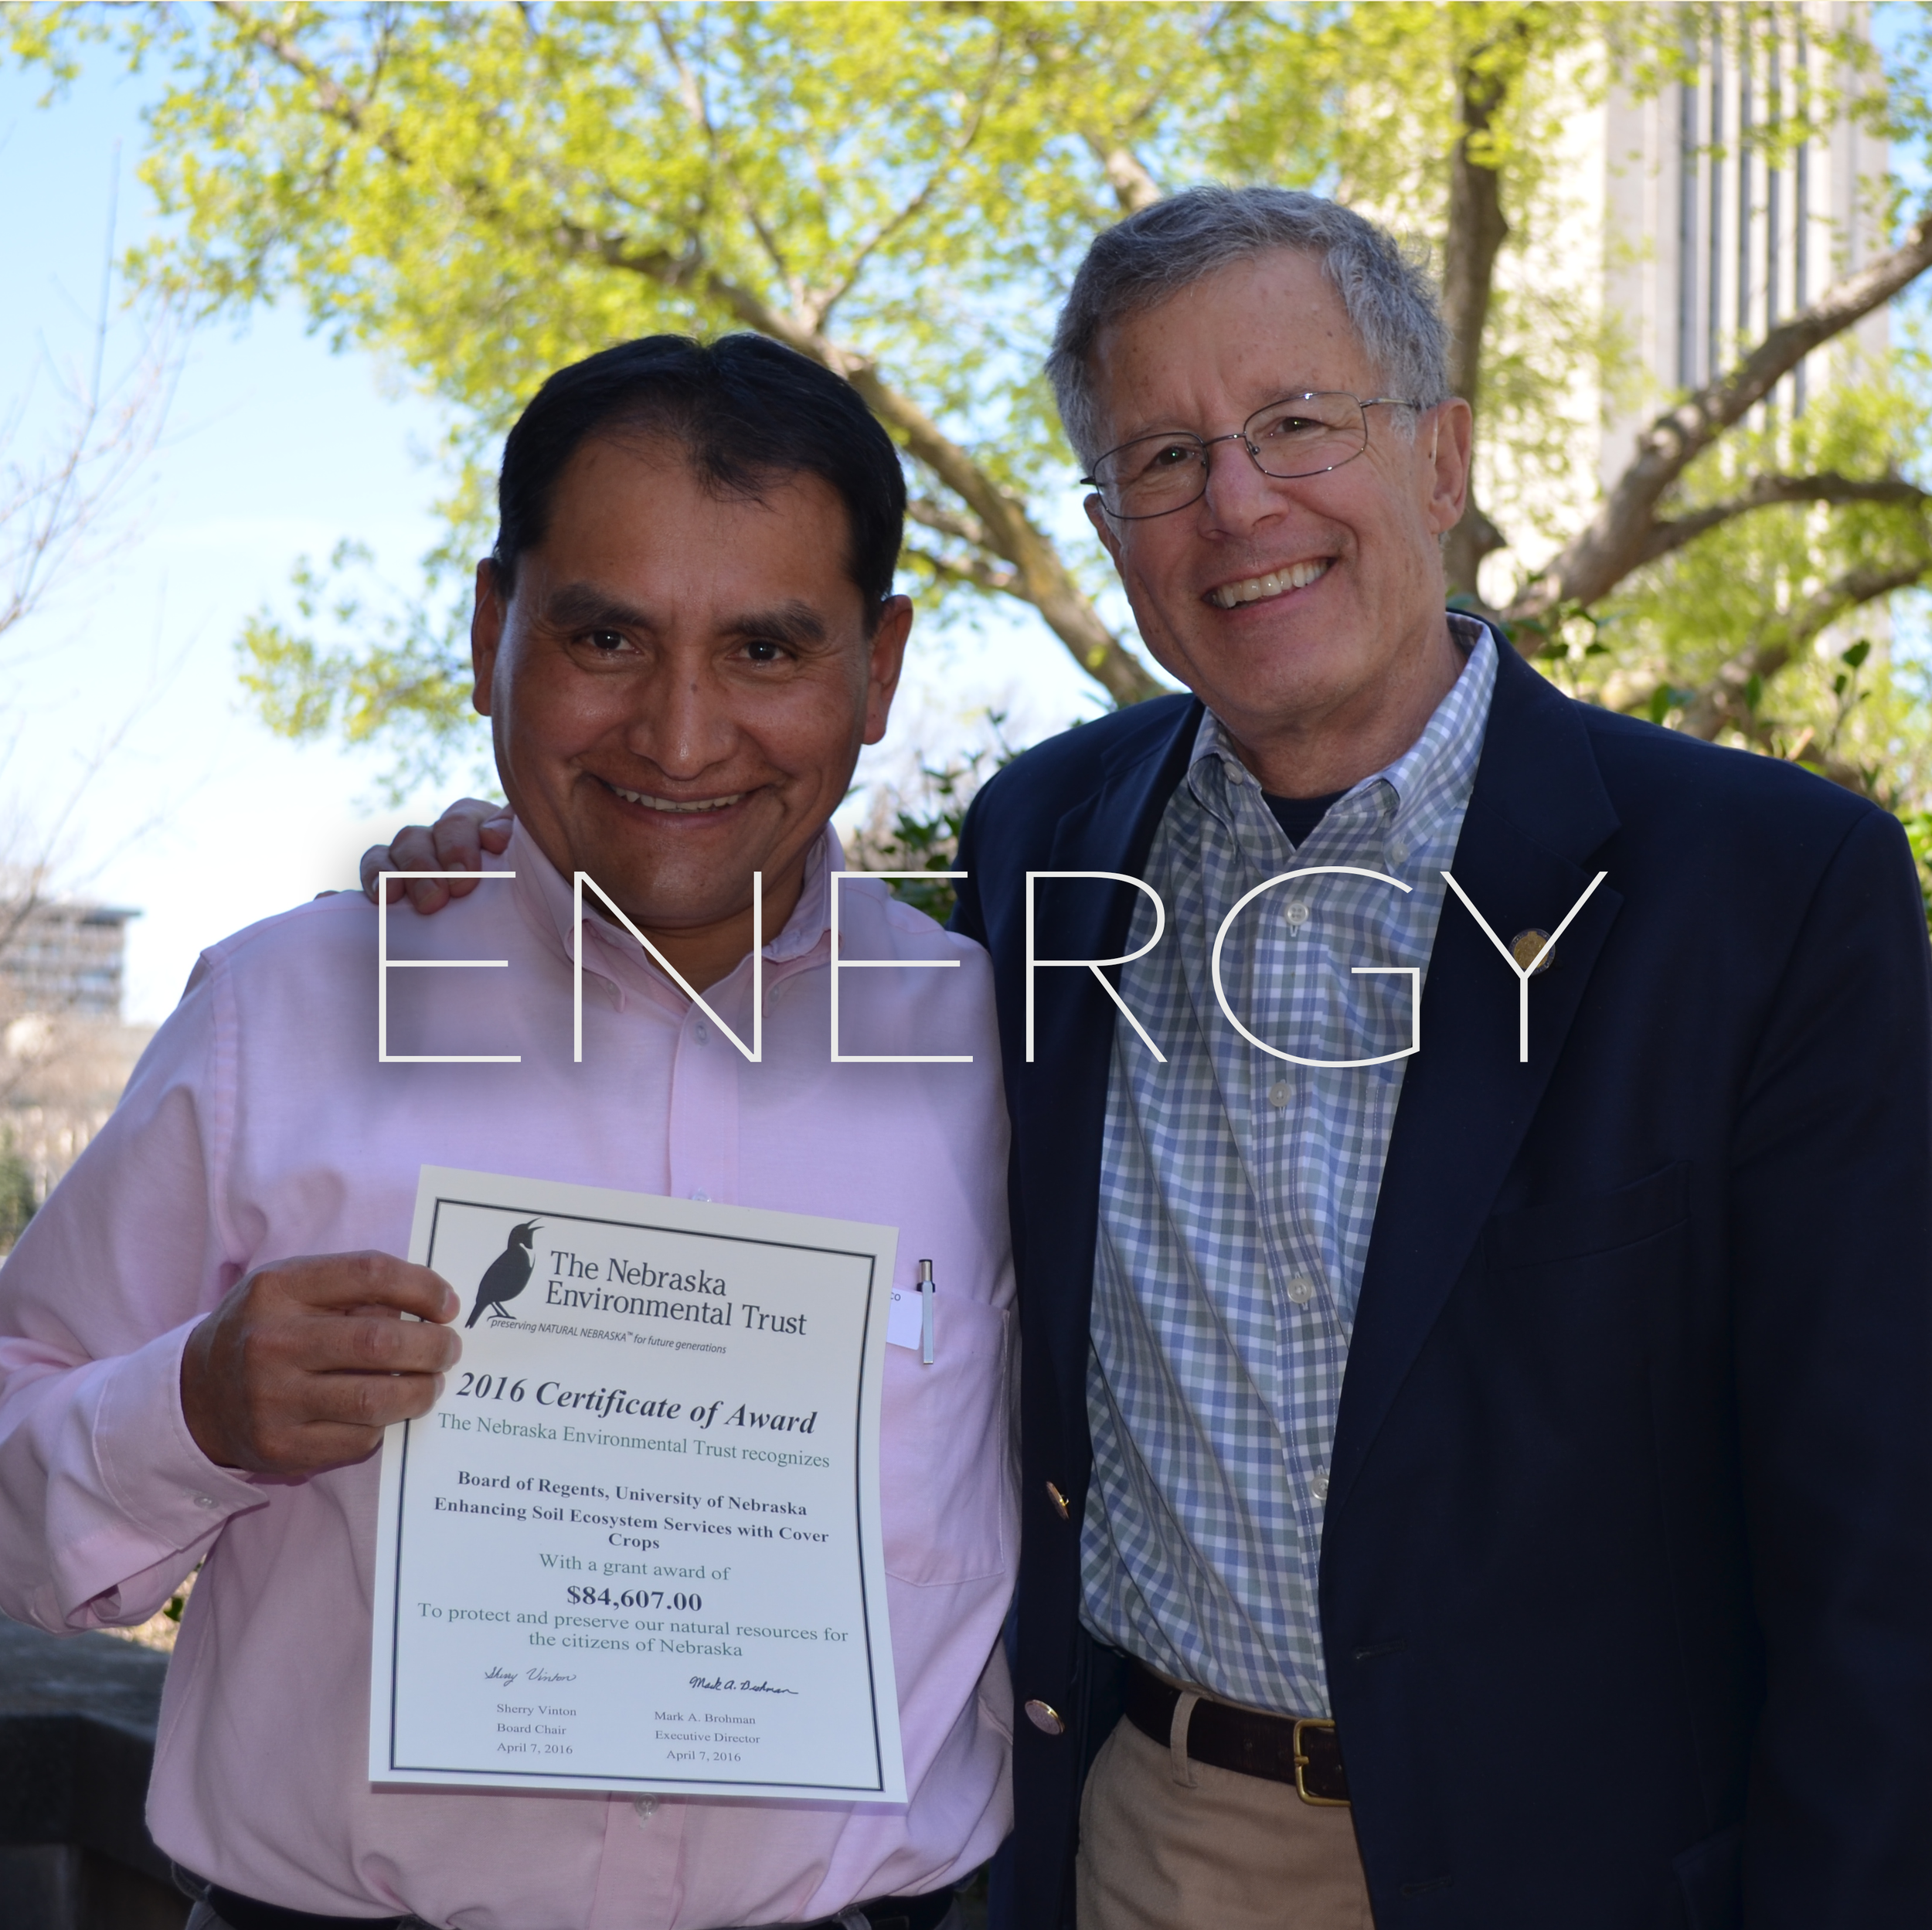 Good investments take time, and as a state senator, John will make those responsible long-term investments as he continues the fight for clean and sustainable energy. As a board member of the Metropolitan Utility District for nearly 30 years, he is familiar with these concepts.